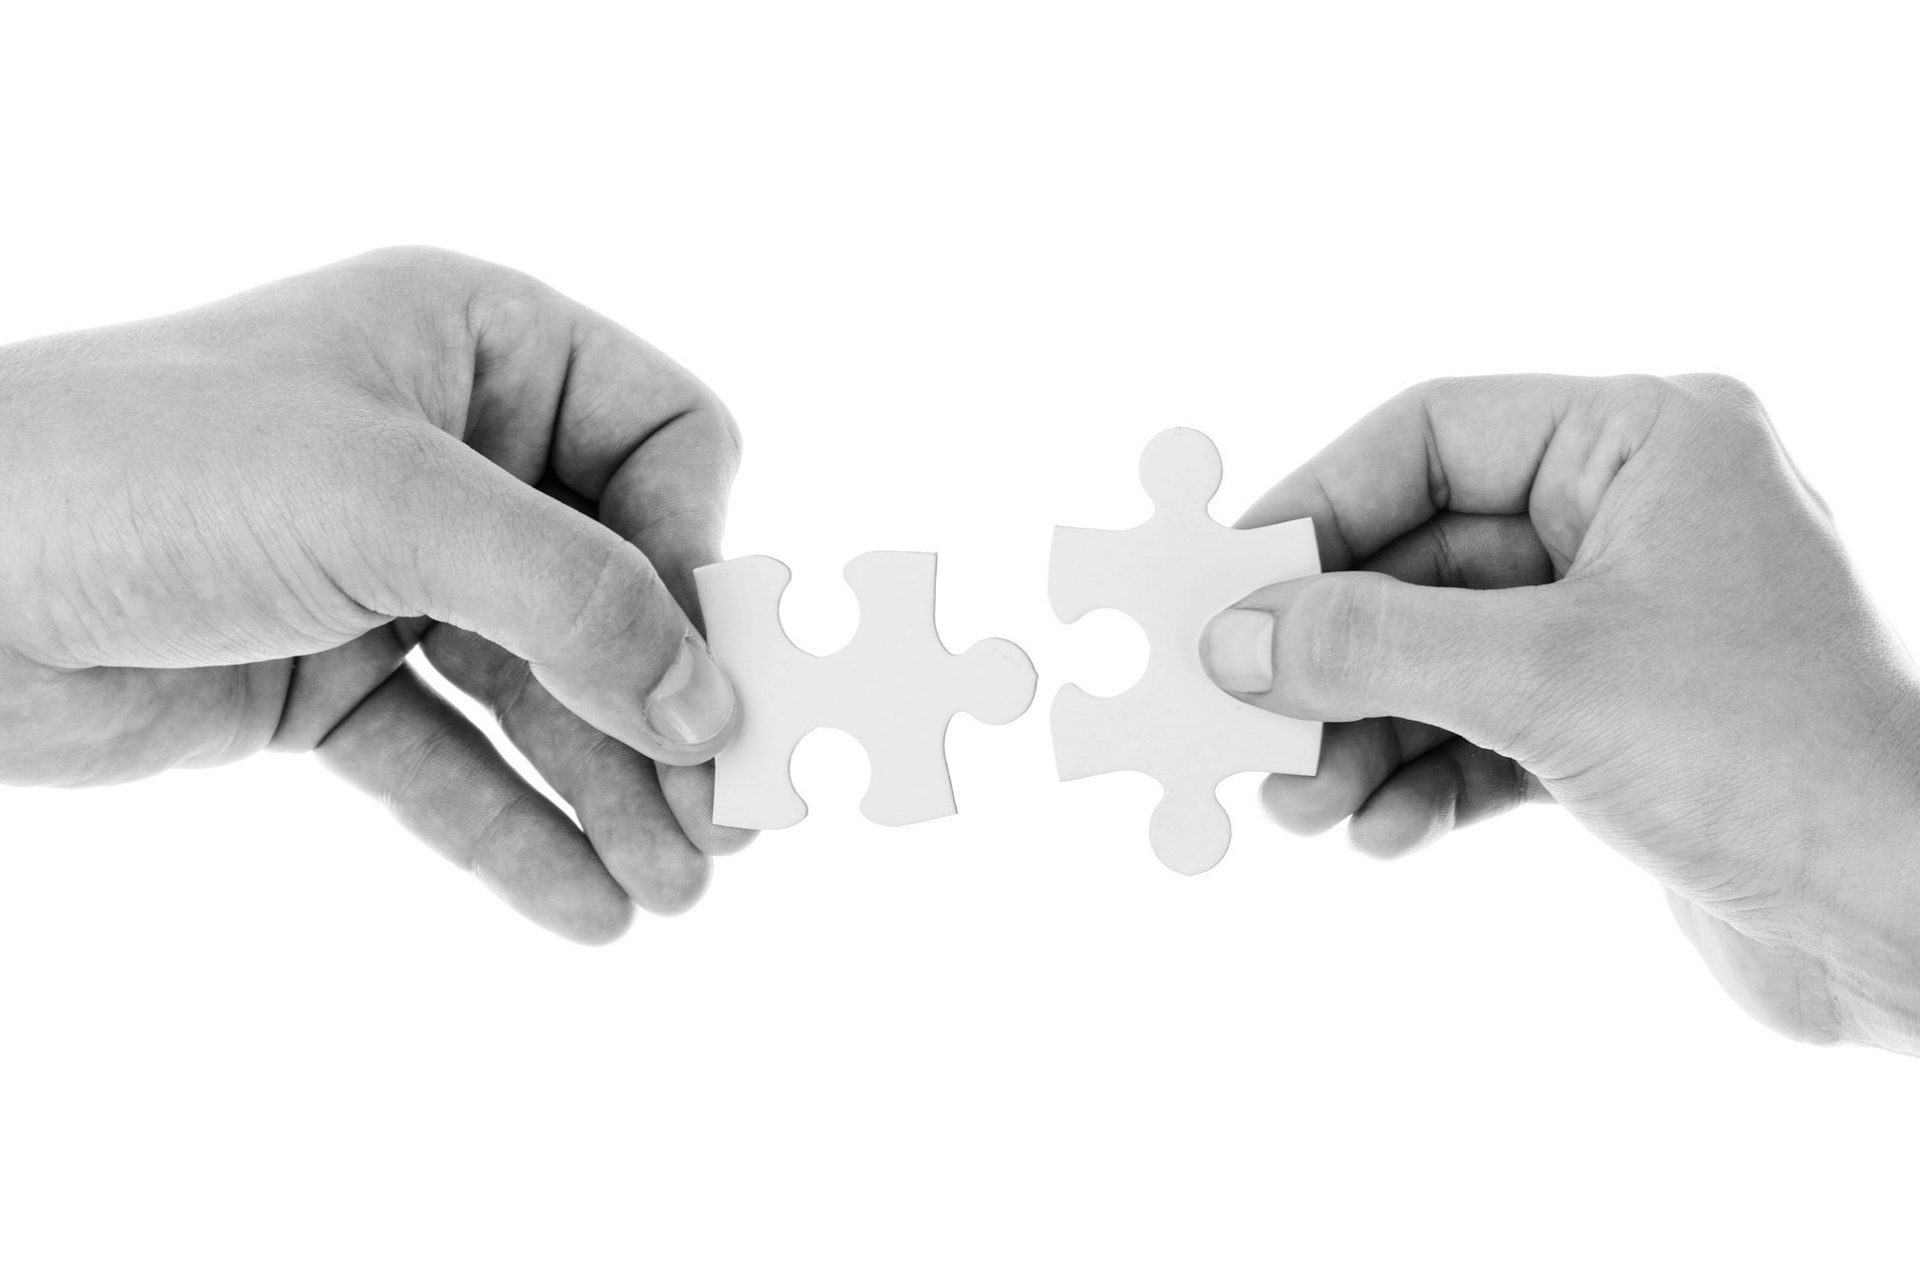 This image portrays two puzzle pieces connecting, representing the importance of cause marketing, and nonprofit brand identity for nonprofit business partners